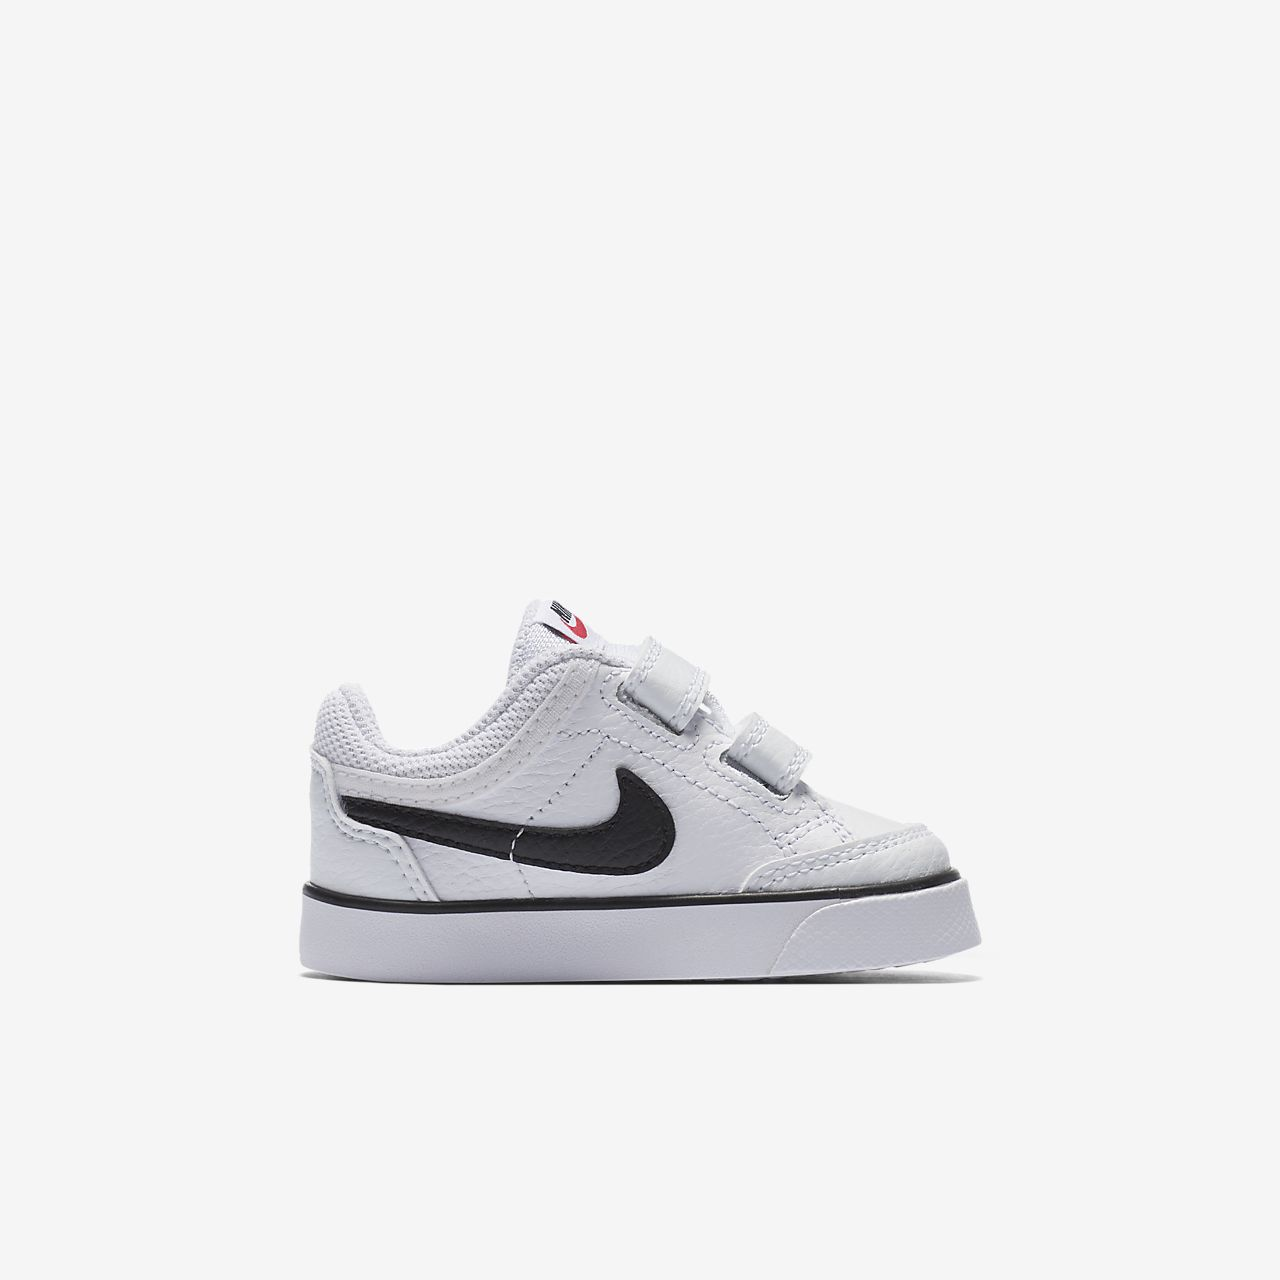 nike toddler shoes ... nike capri 3 infant/toddler shoe QNOAHWB